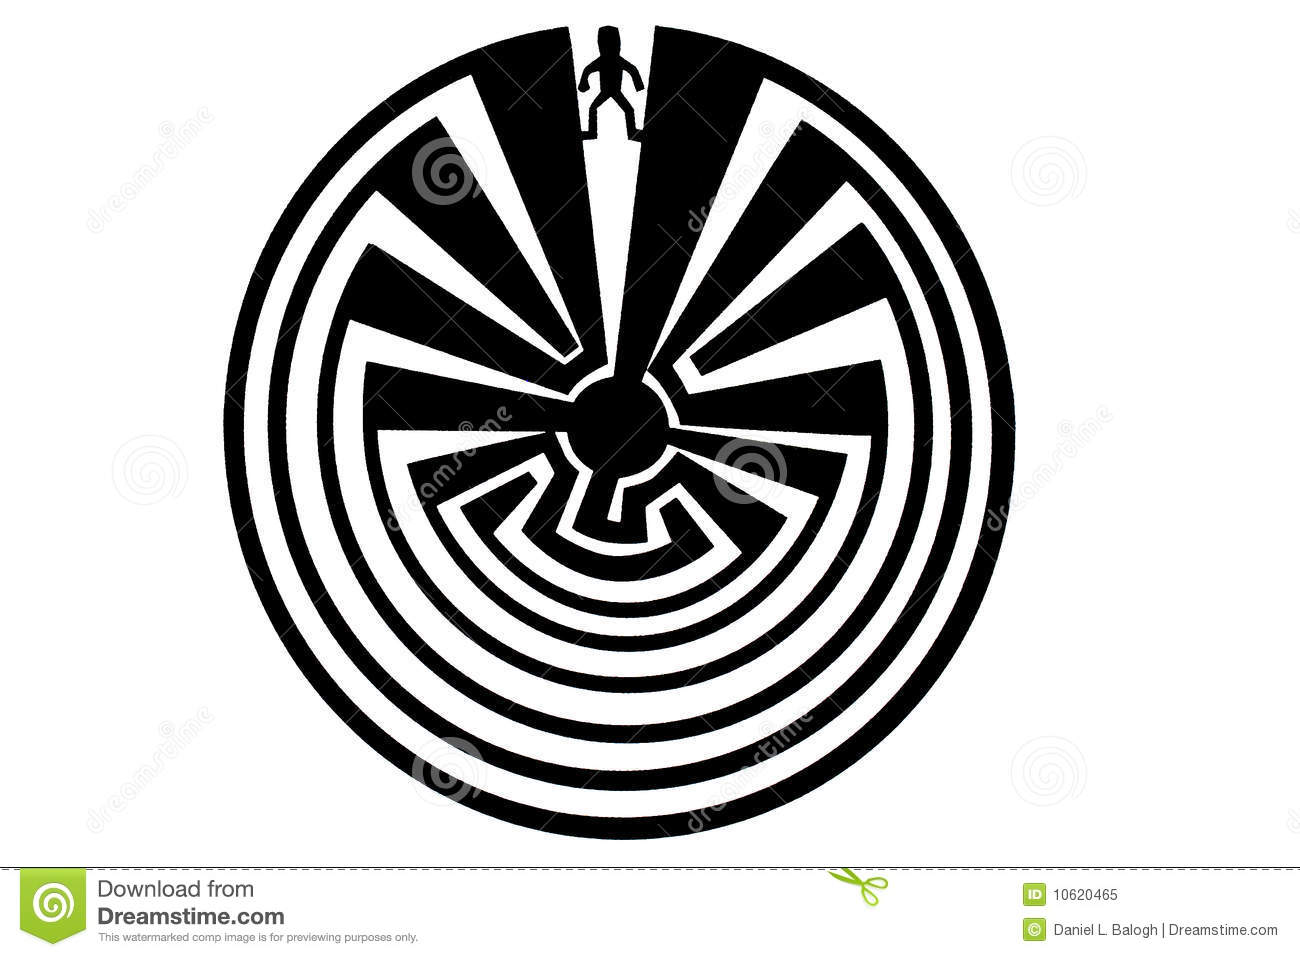 Man In The Maze Indian Symbol Royalty Free Stock Photo